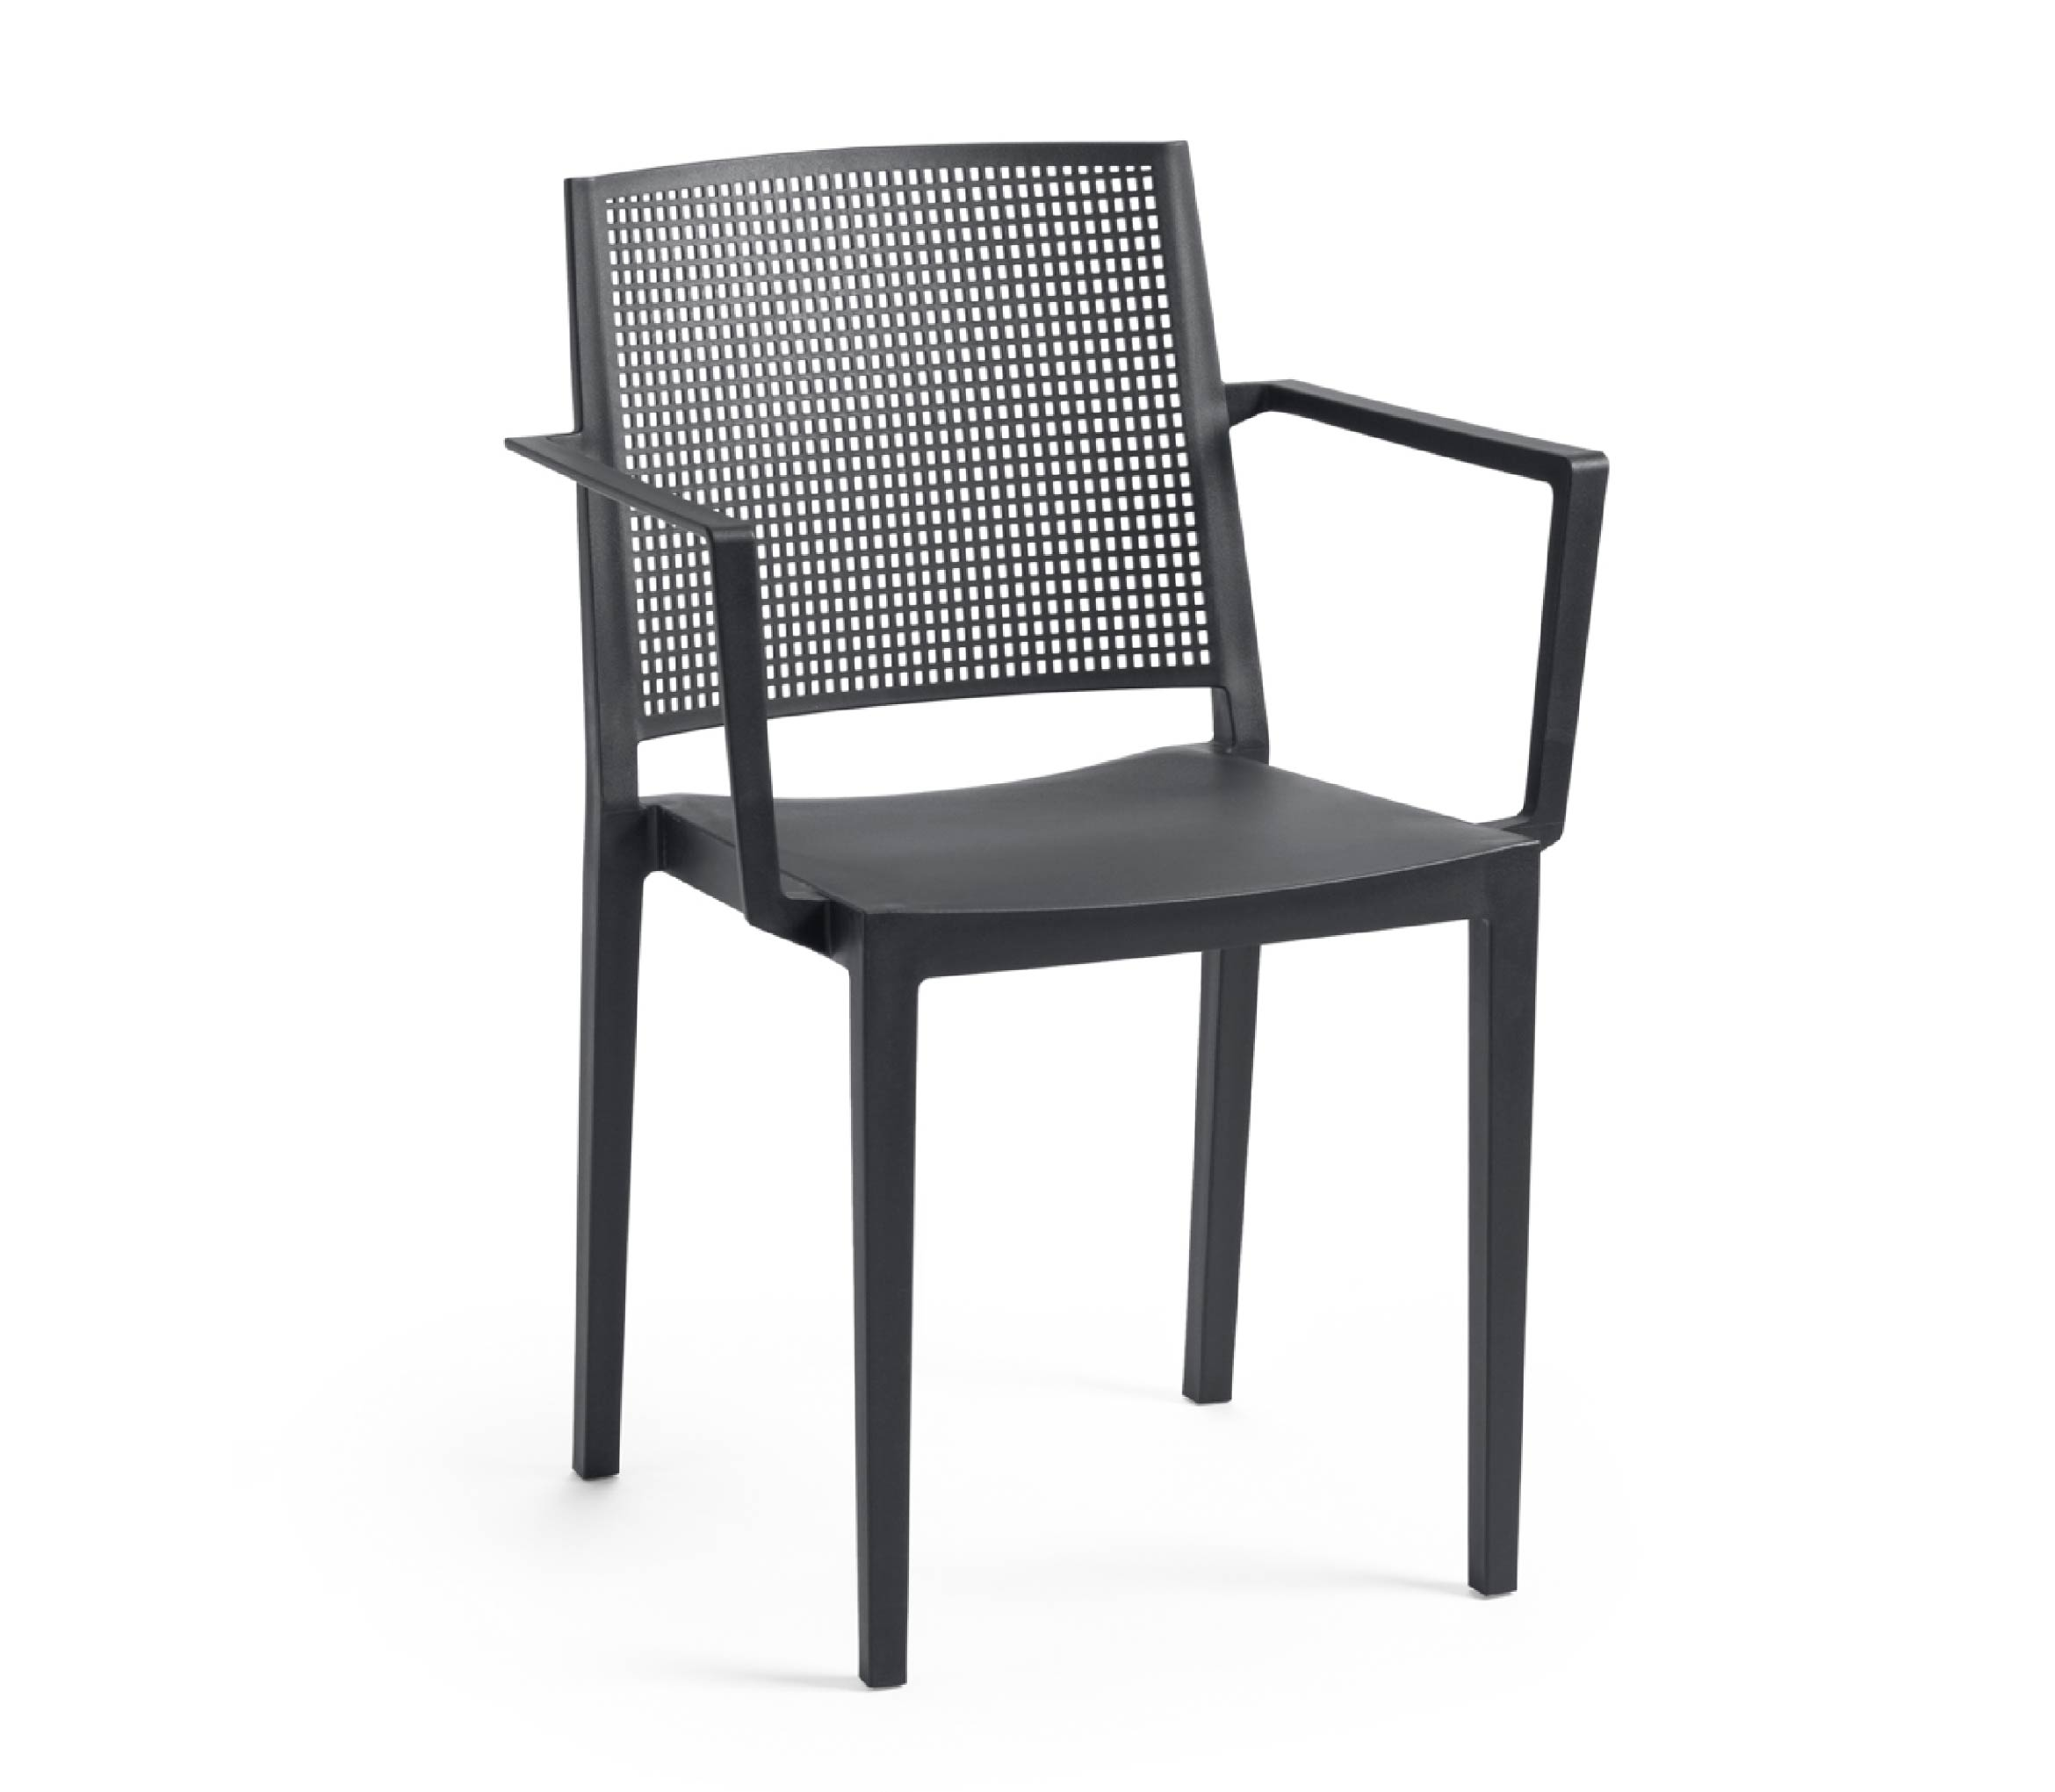 5 - TENSAI_FURNITURE_GRID_ARMCHAIR_plastic_chair_antracite_color_white_background_950_001